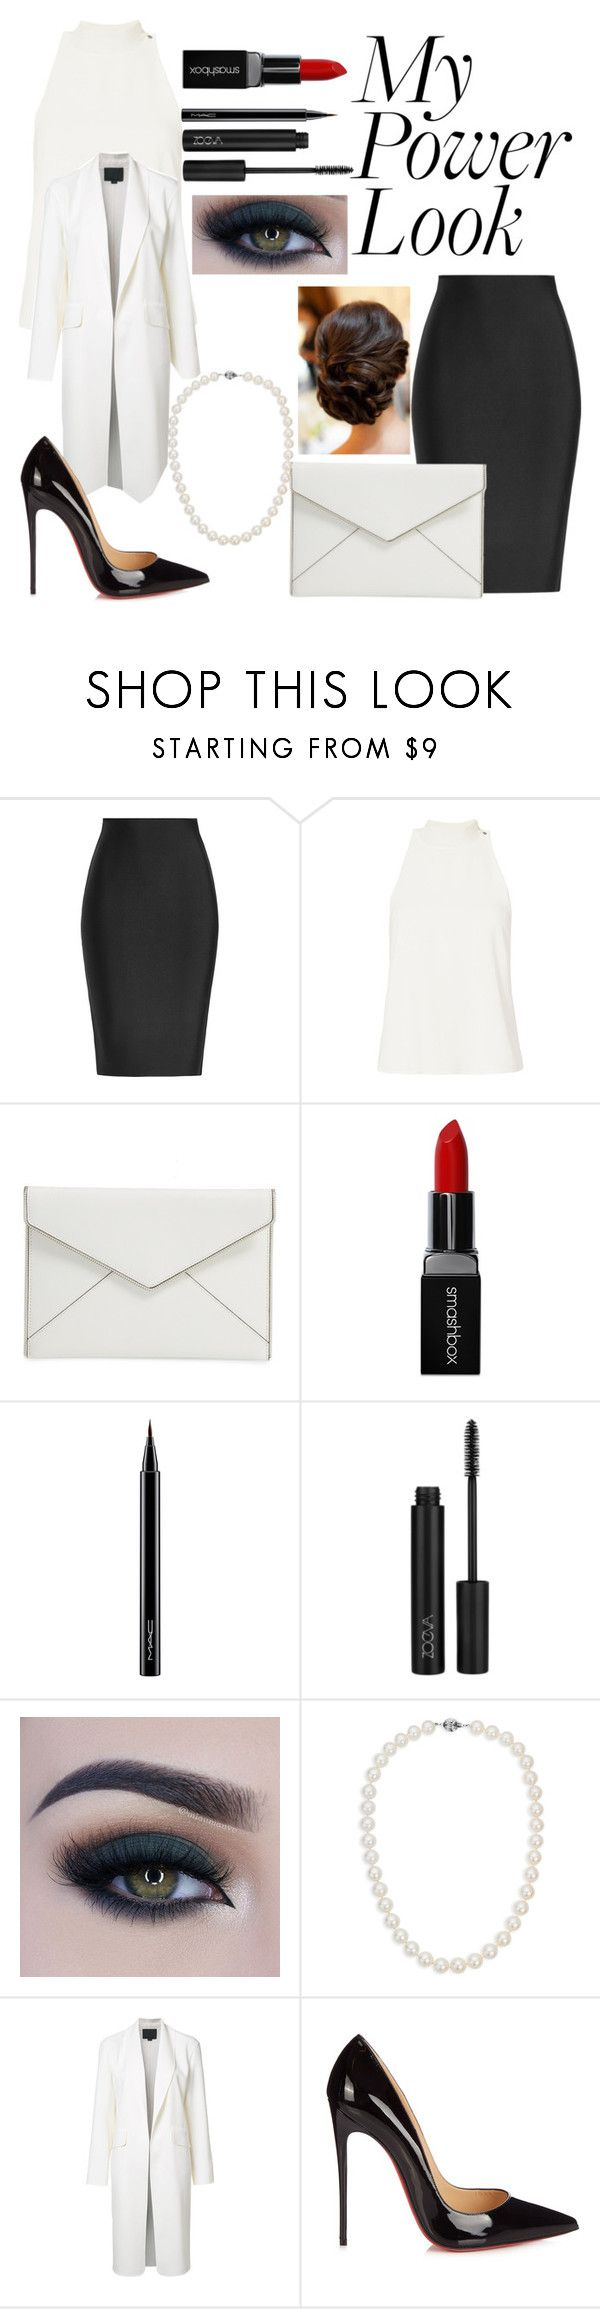 """""""Untitled #190"""" by moreno-jenifer ❤ liked on Polyvore featuring Roland Mouret, A.L.C., Rebecca Minkoff, Smashbox, MAC Cosmetics, Too Faced Cosmetics, Blue Nile, Alexander Wang and Christian Louboutin"""